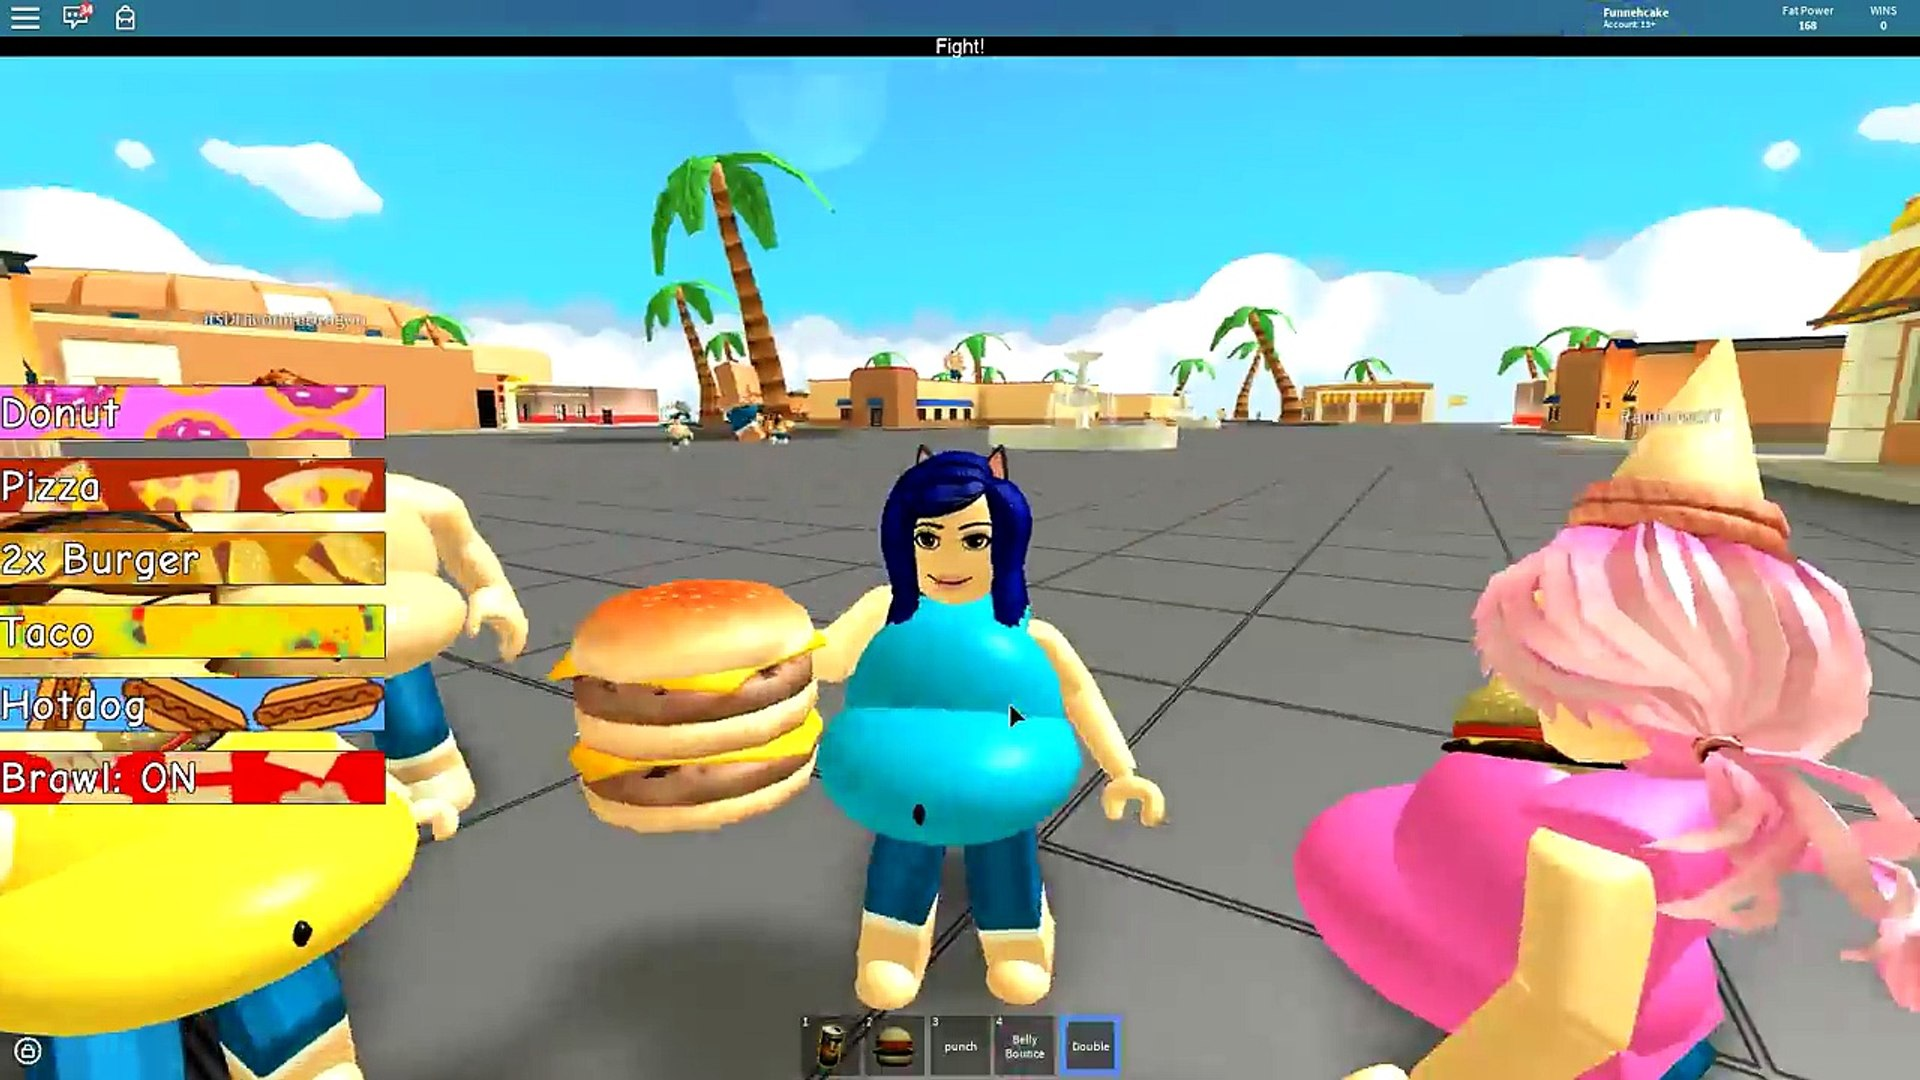 370.GETTING SUPER FAT IN ROBLOX! ROBLOX EATING SIMULATOR!!